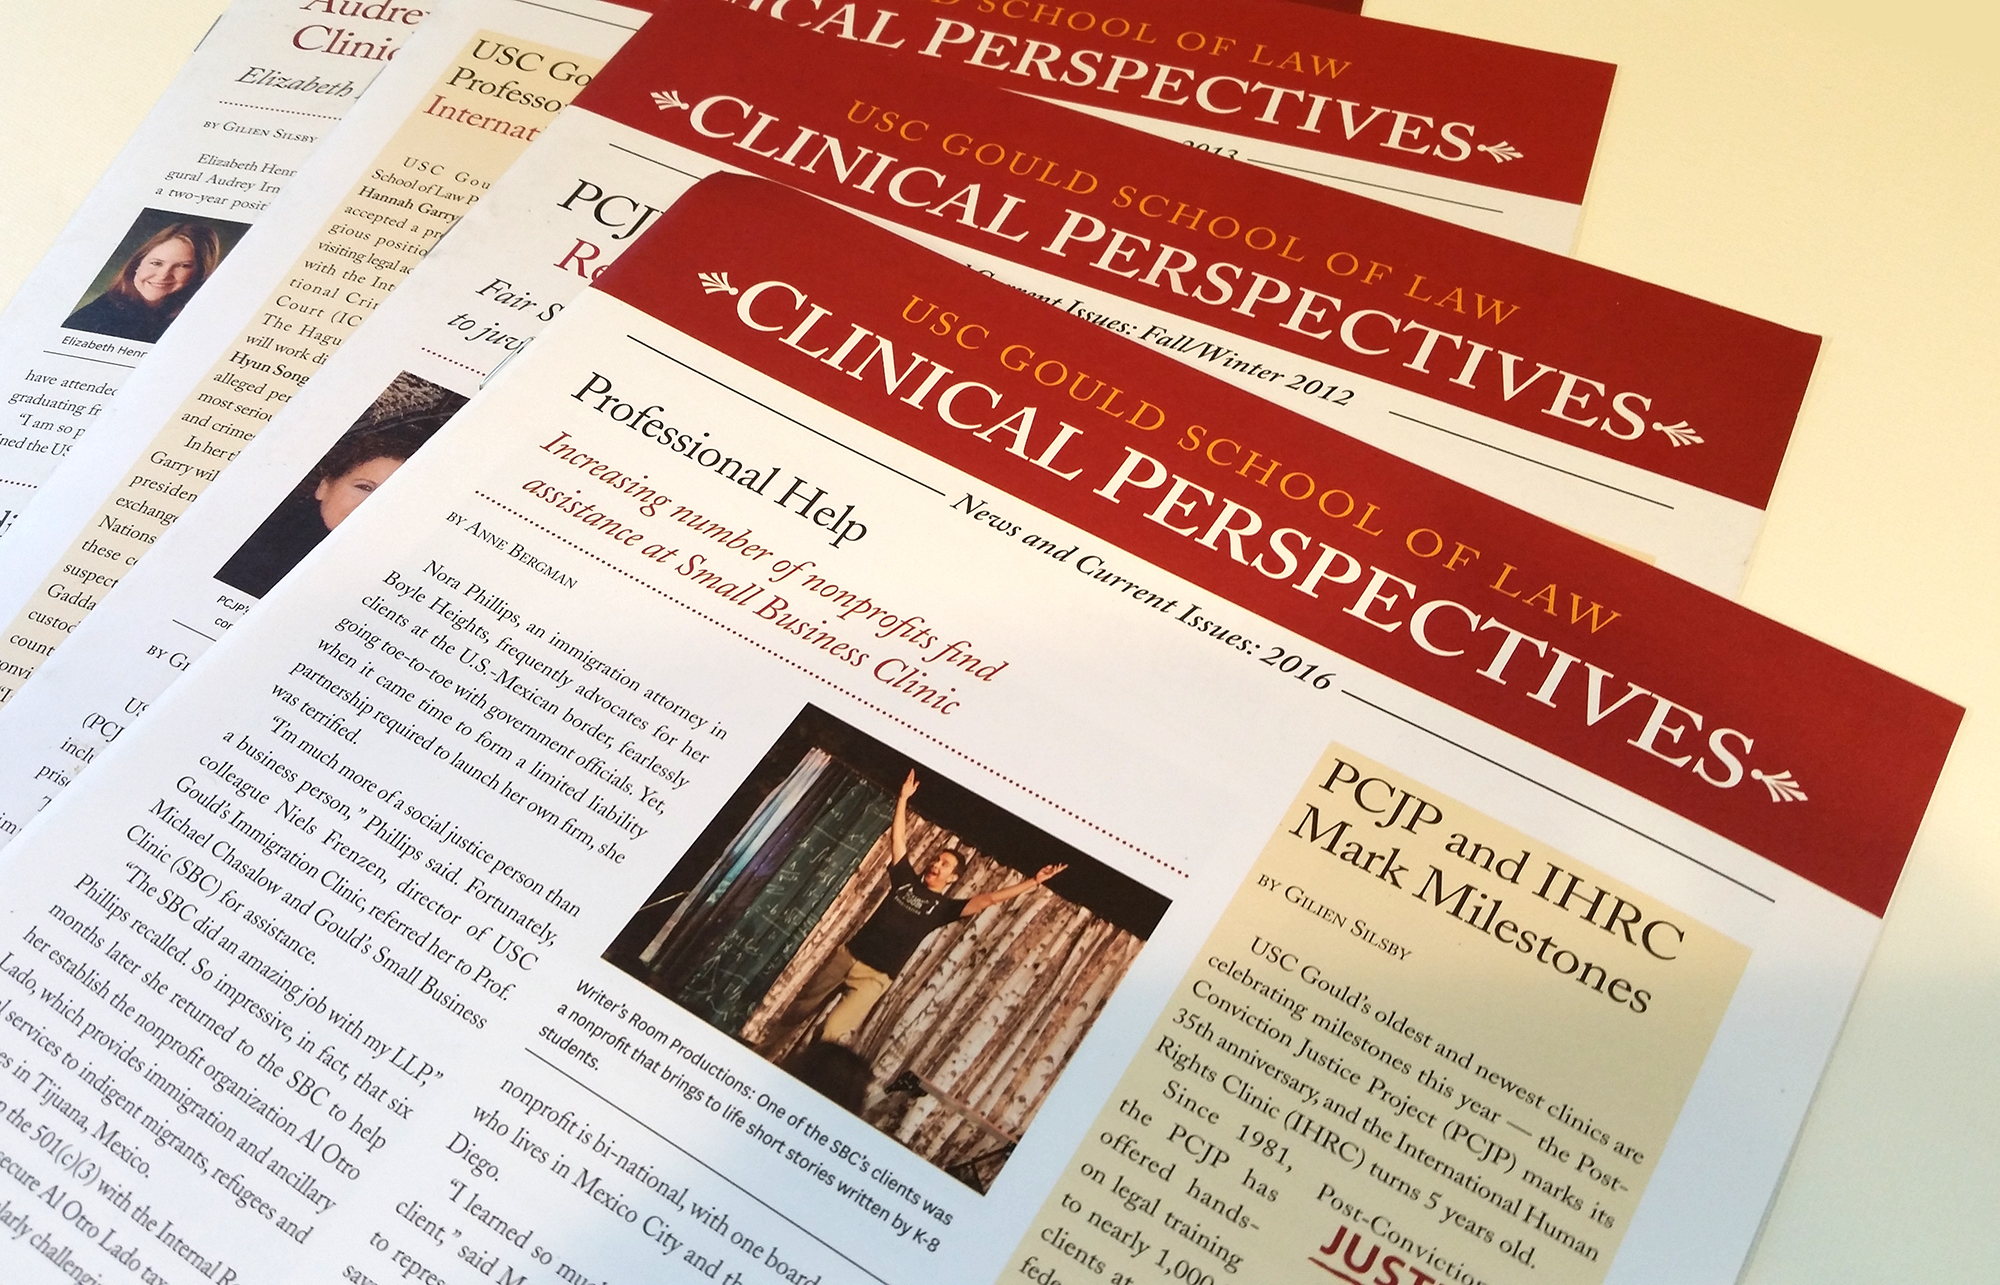 usc-clinical-perspectives-copies